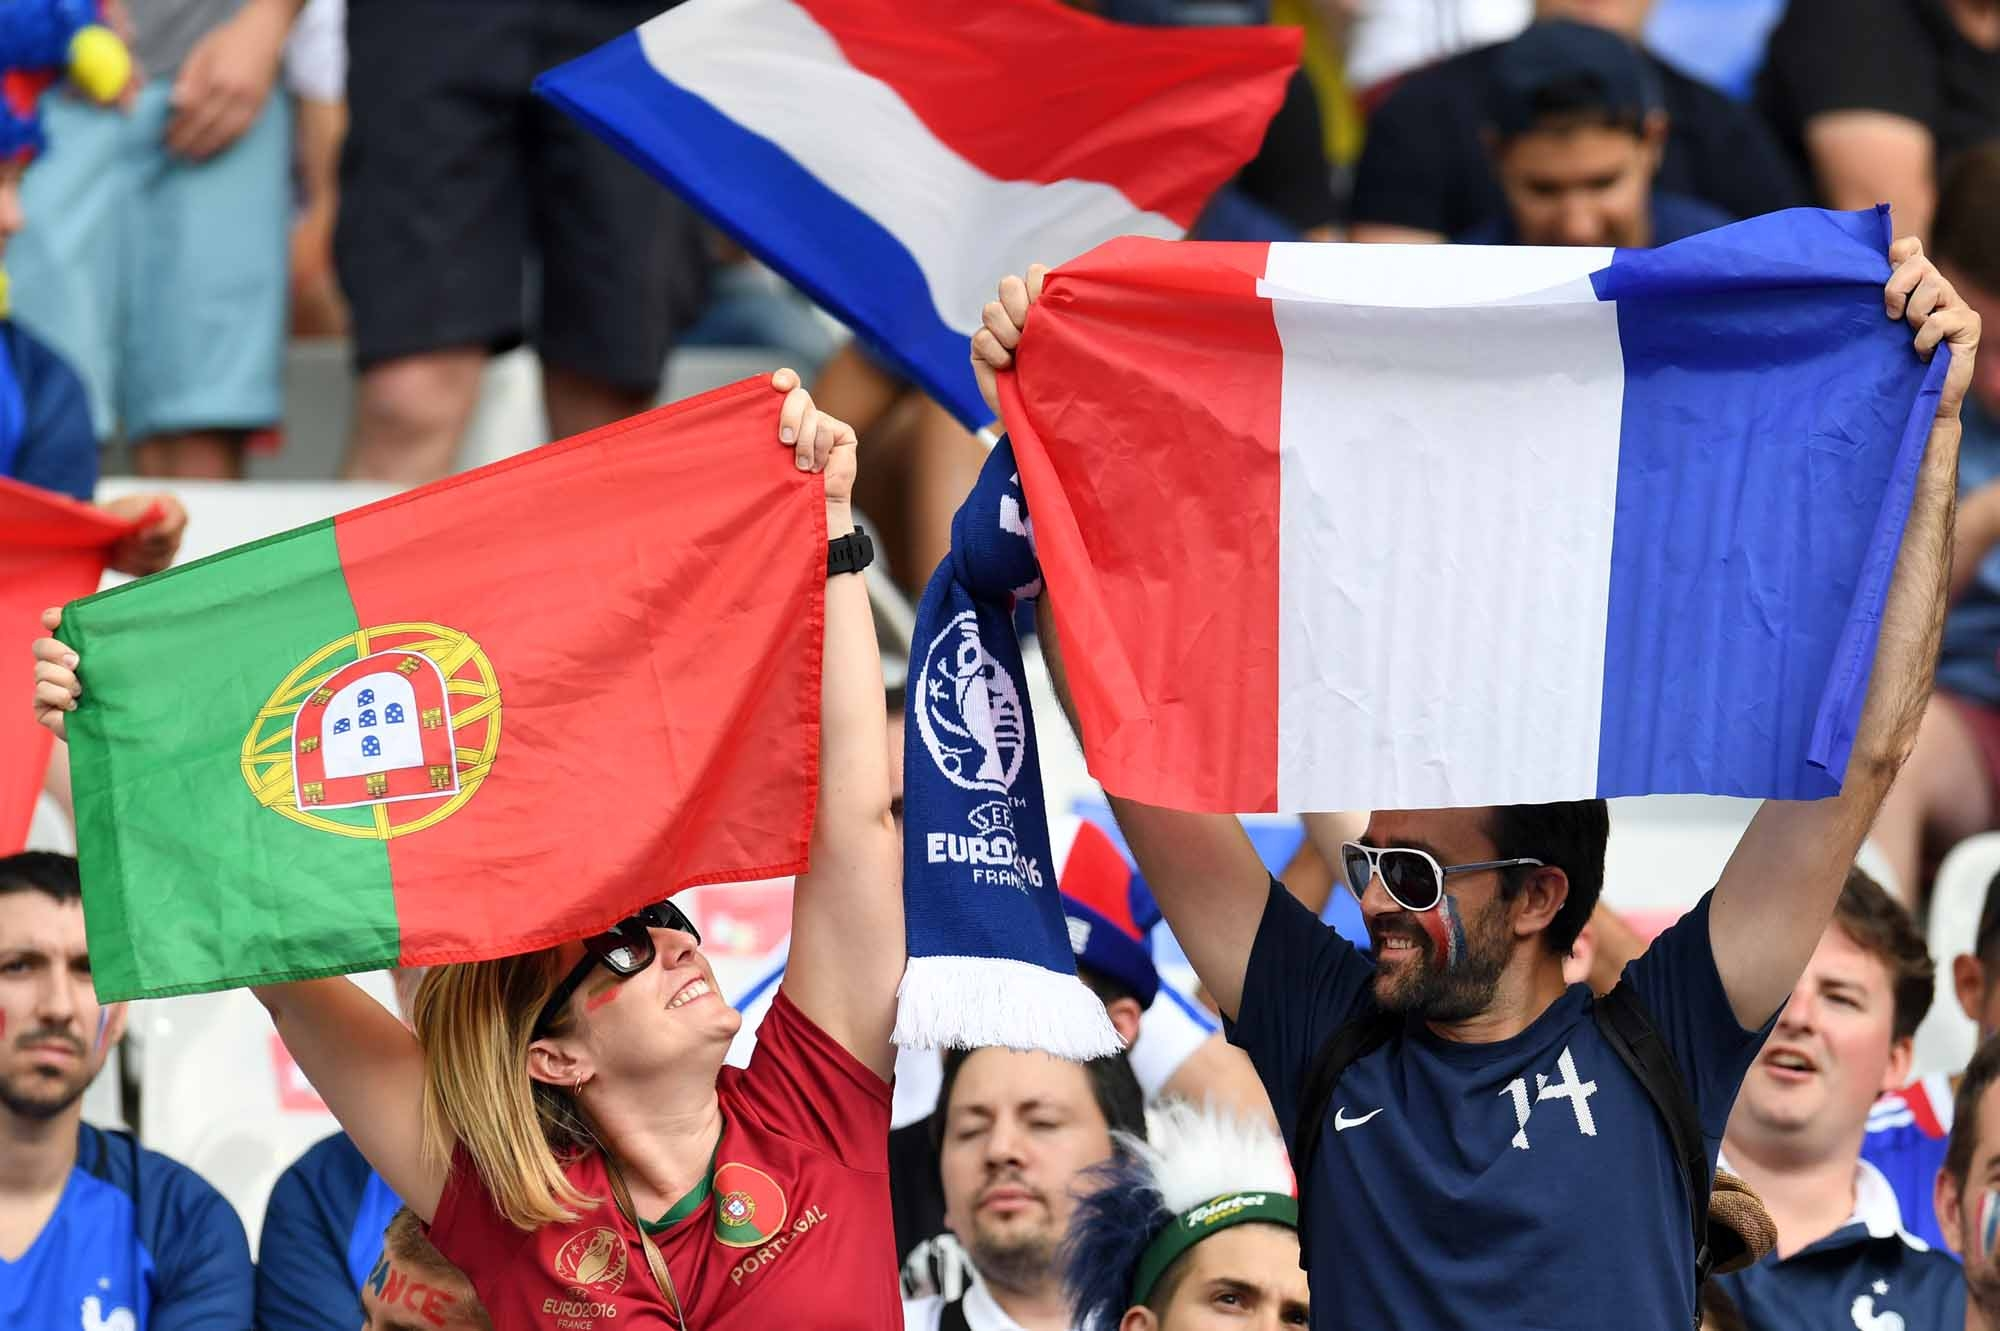 Supporters wave Portuguese and French flags ahead of the Euro 2016 final football match at the Stade de France in Saint-Denis, north of Paris, on July 10, 2016. / AFP PHOTO / PATRIK STOLLARZ